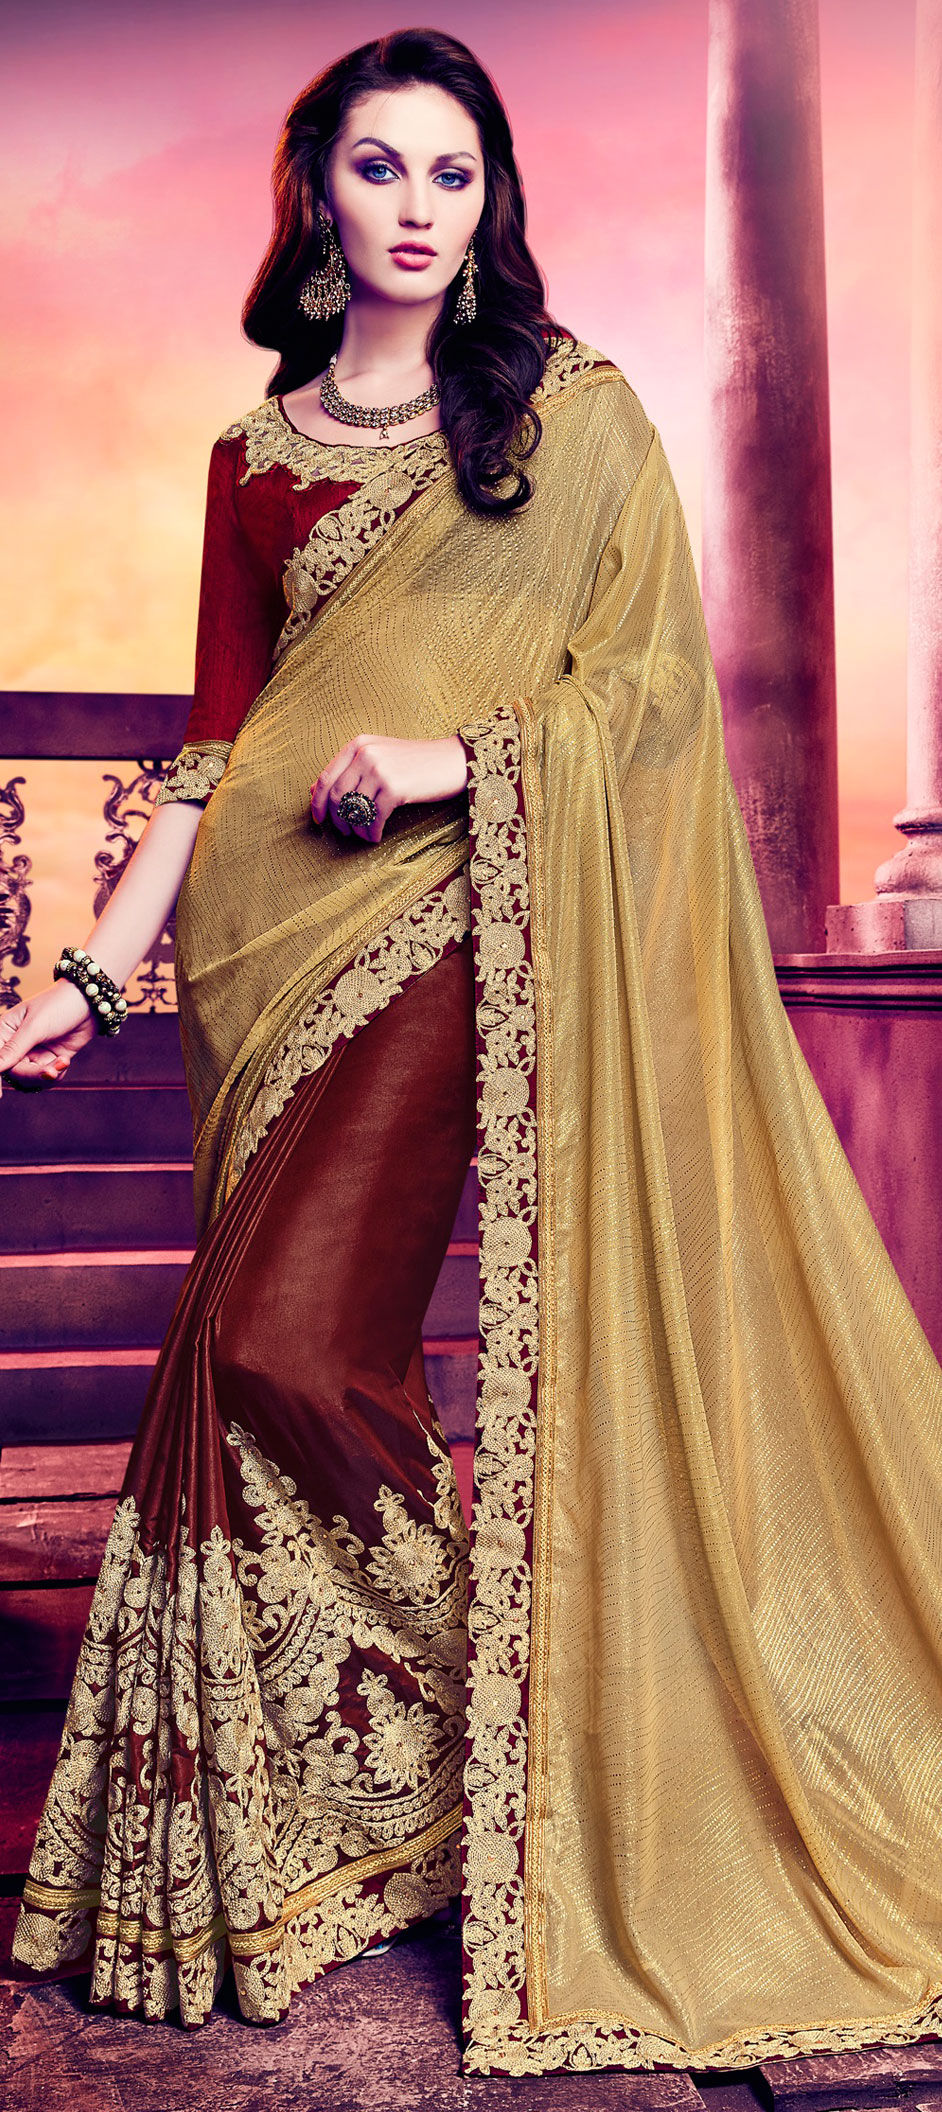 85e3c71297 744083: Gold,Red and Maroon color family Embroidered Sarees,Party ...